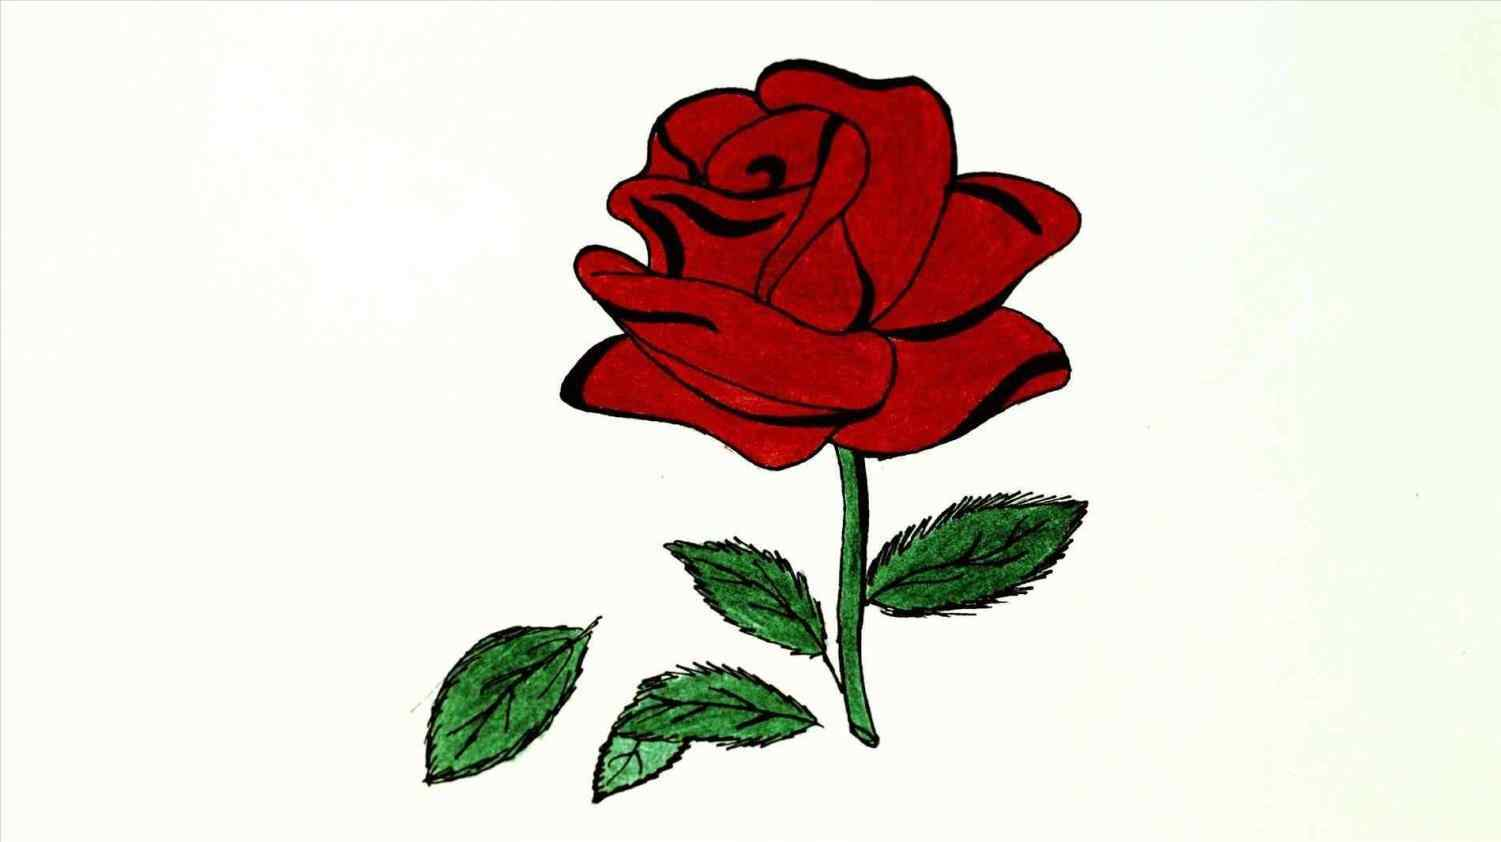 1501x842 Roses Drawings Easy Your Meme Source